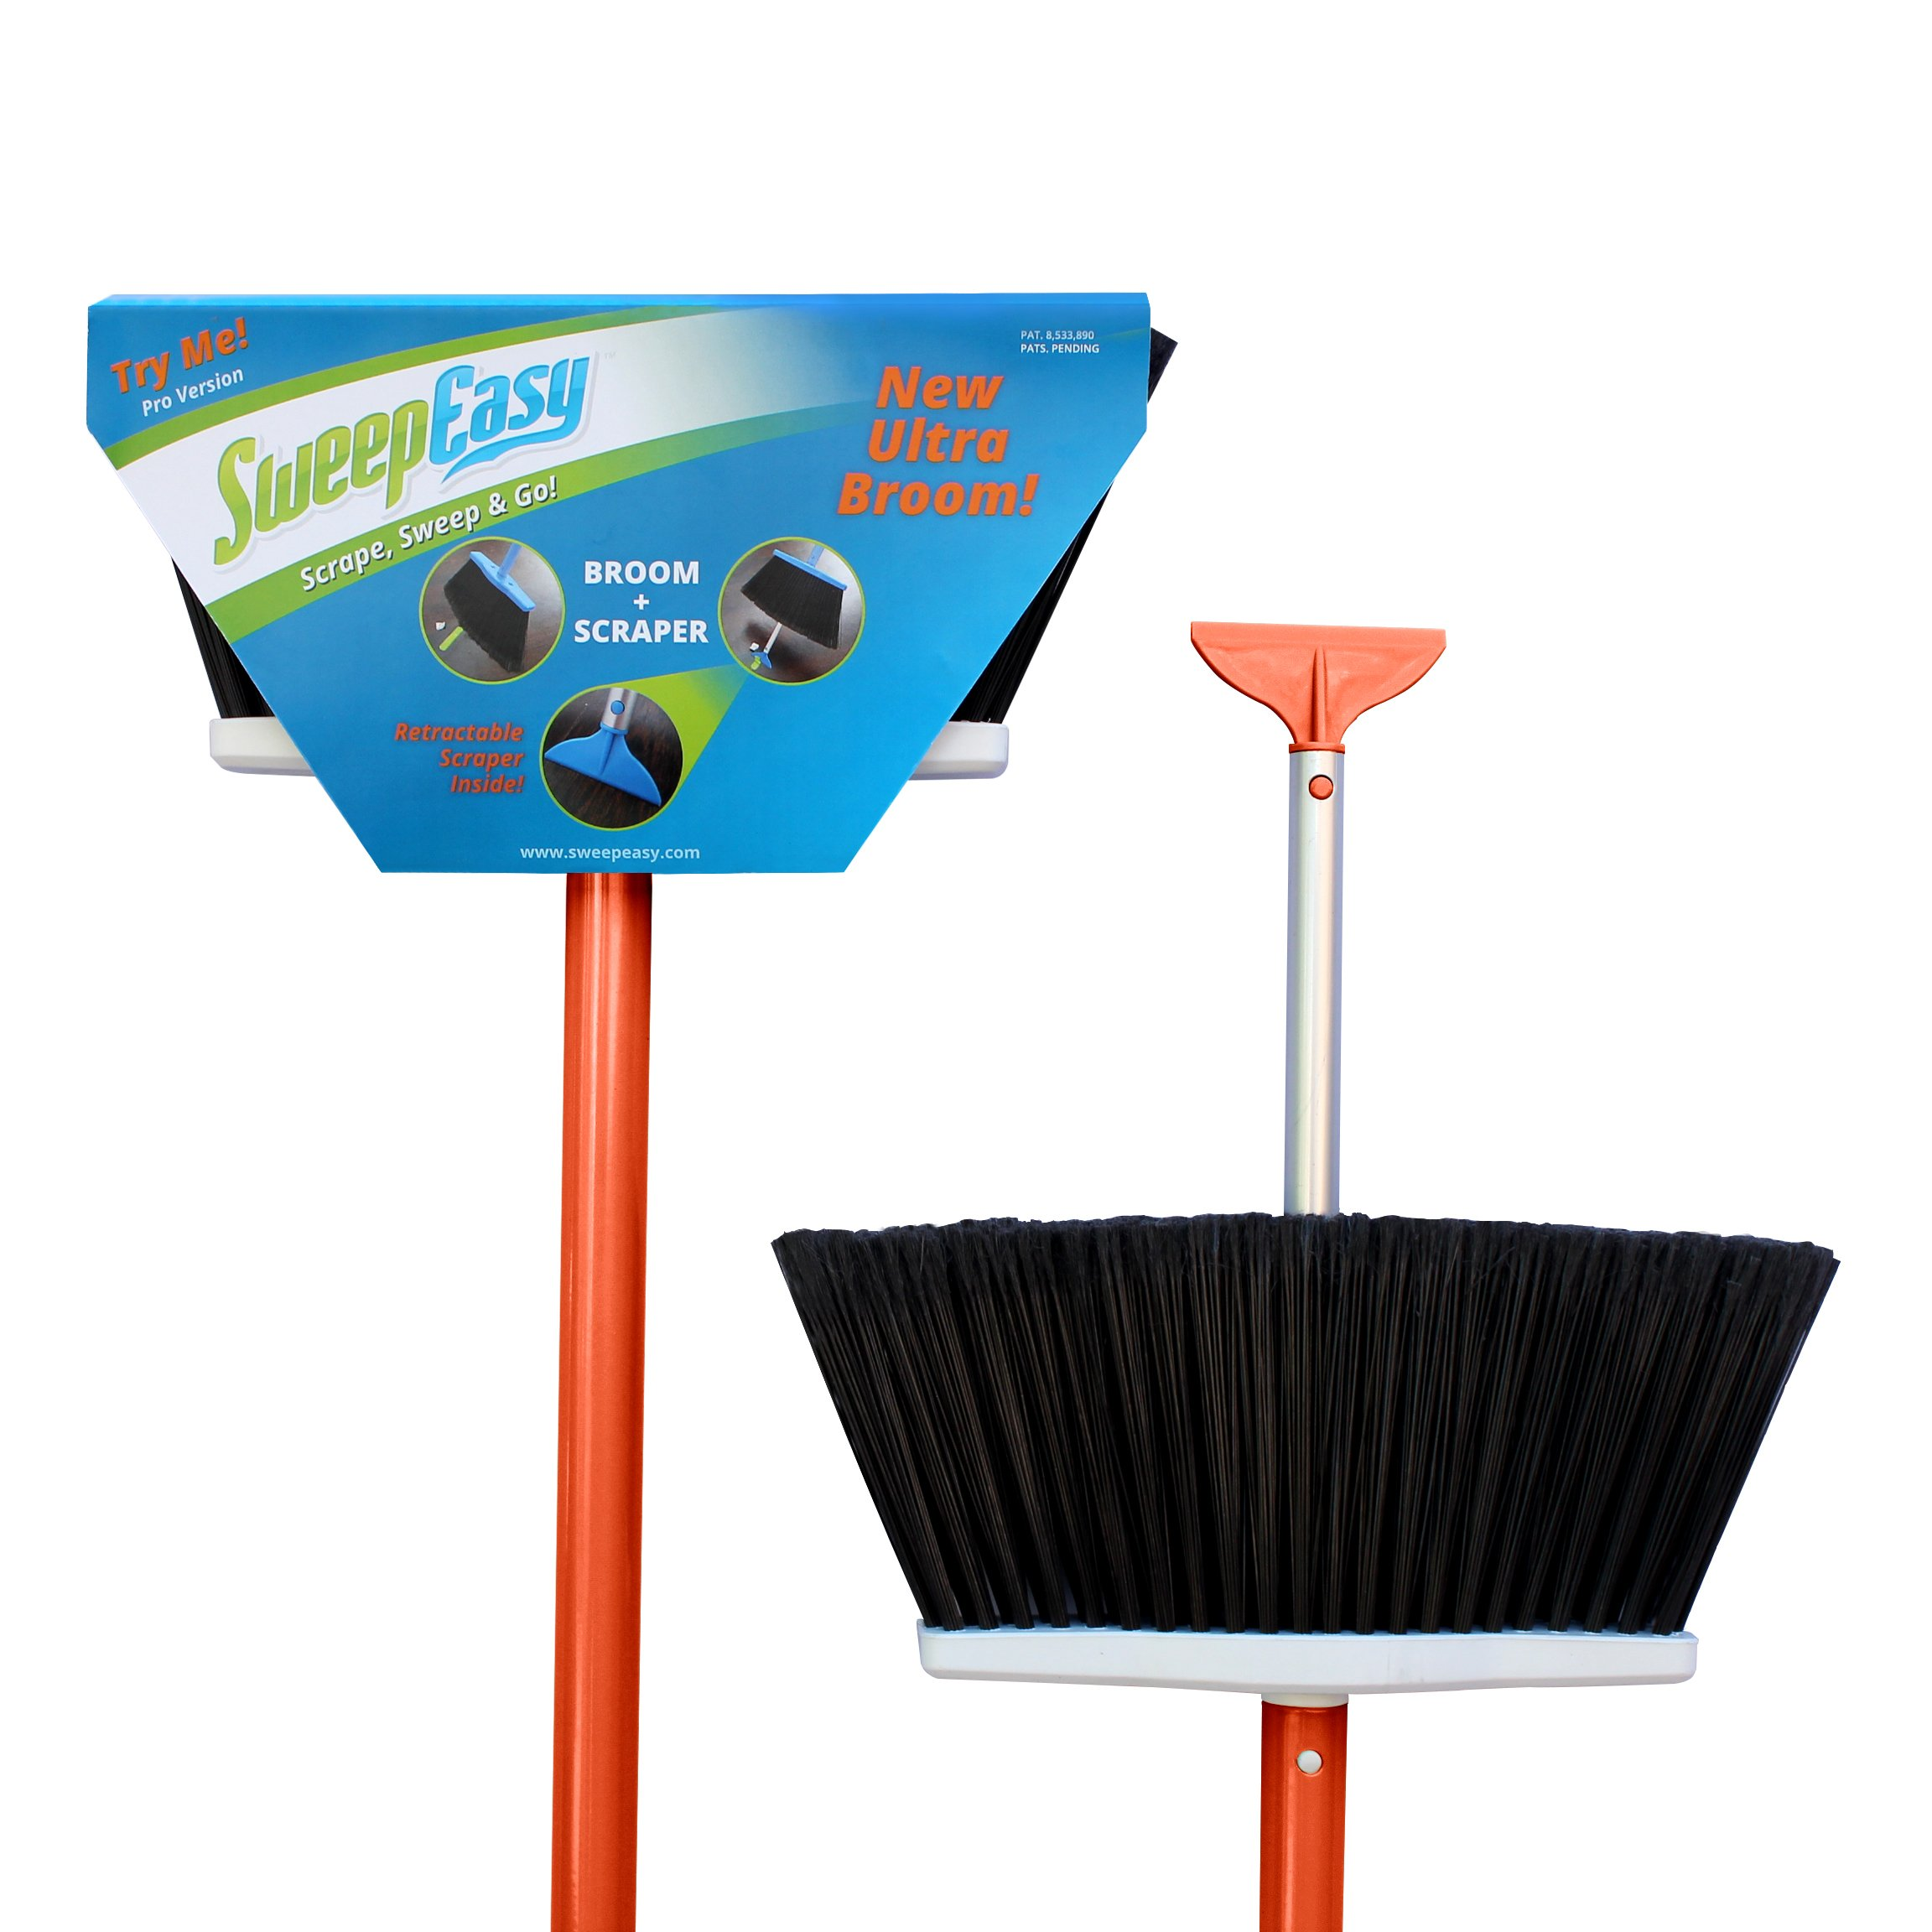 SweepEasy, Broom, As Seen On Shark Tank. For Indoor and Outdoor Use Retractable Handle With Scrapper Making Sweeping Easy With